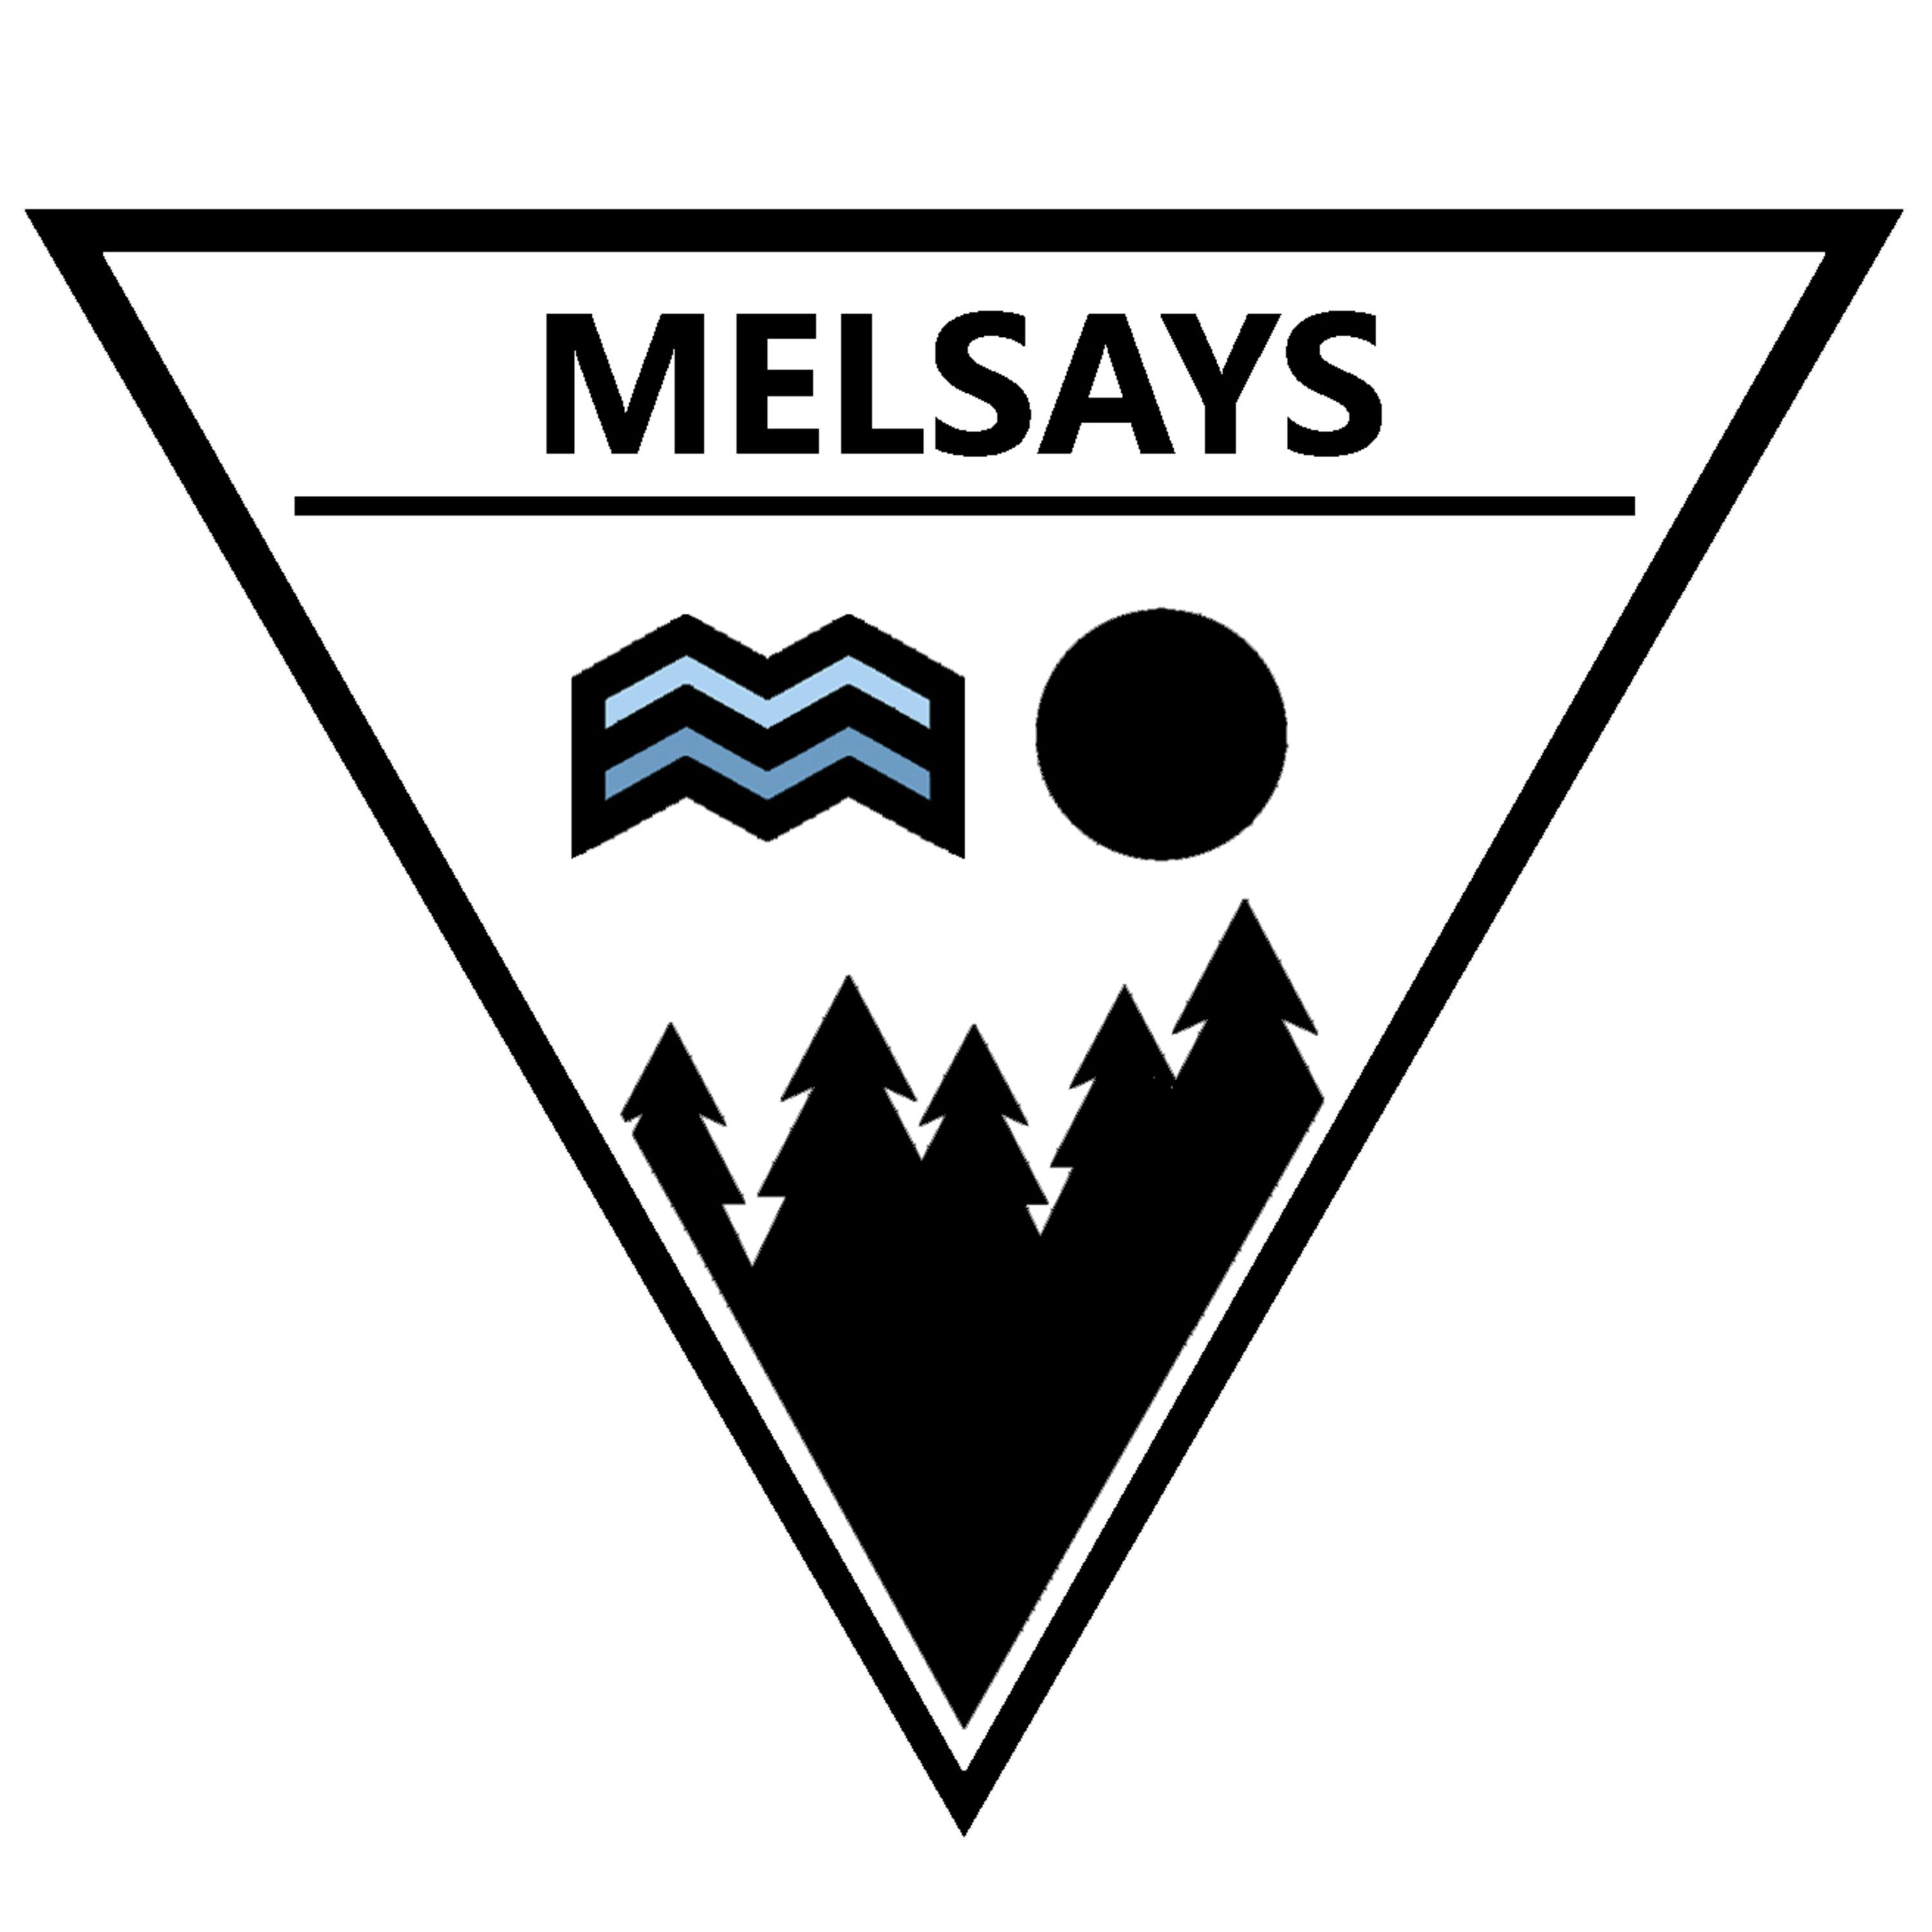 MELSAYS PODCAST - EP. 19 - Sharing my Story